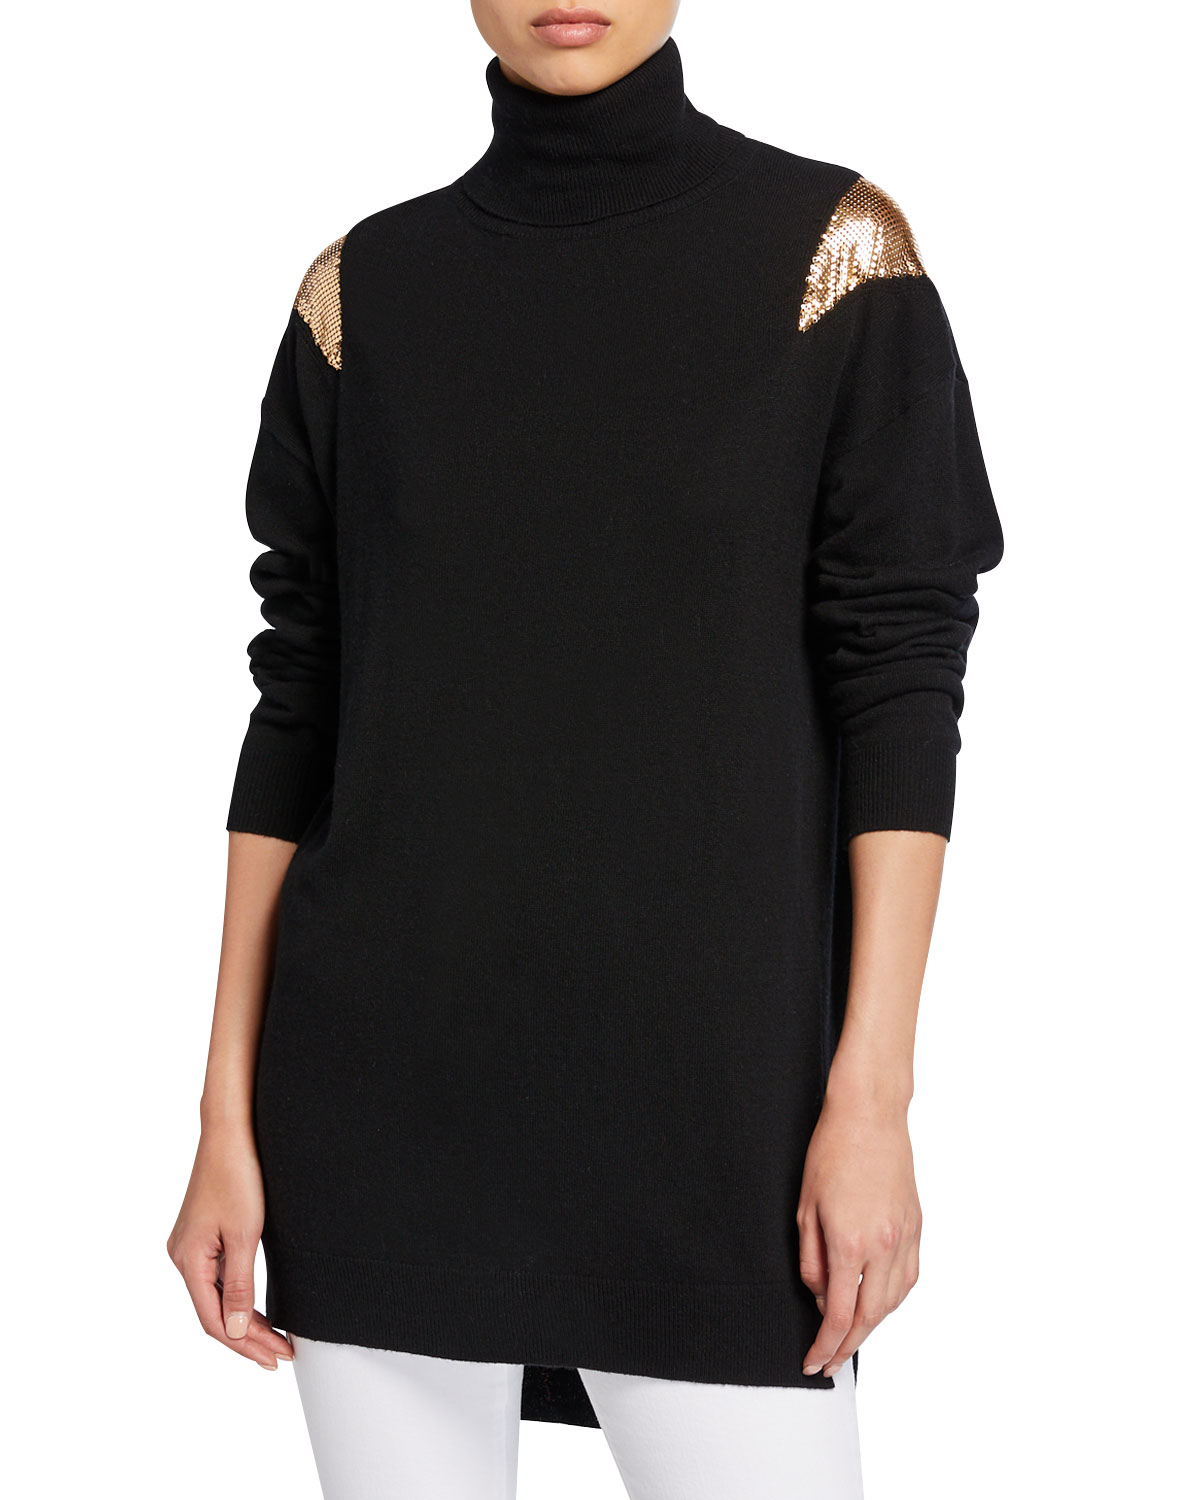 Pinko Tops KNIT TURTLENECK TUNIC SWEATER WITH CHAINMAIL SHOULDERS